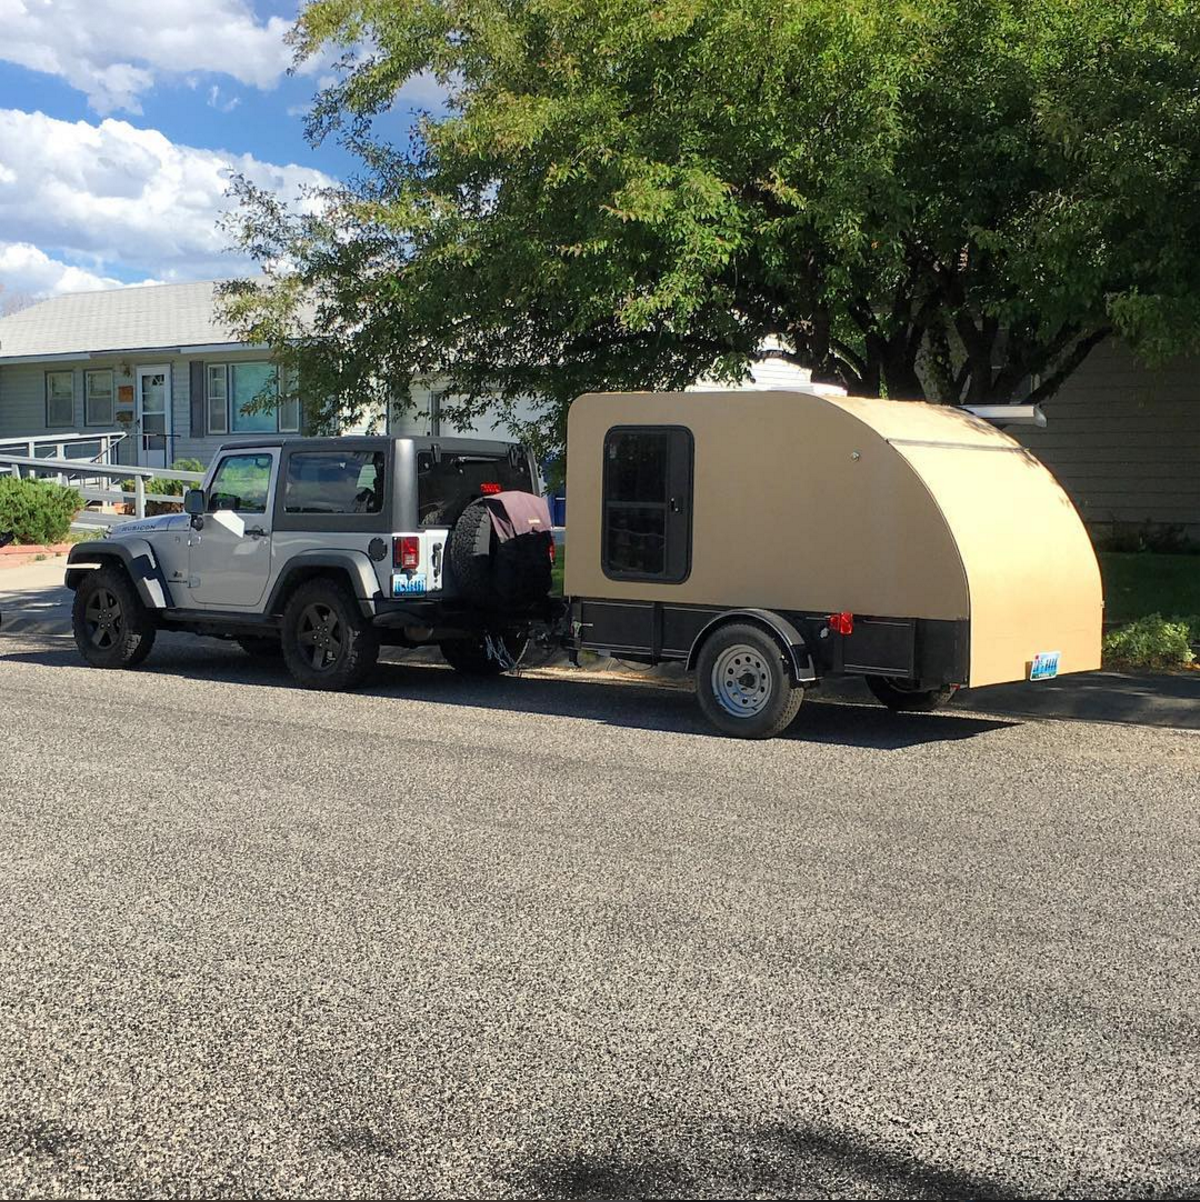 I built this teardrop camper in my garage while we lived in Alabama. It weighed less than 1,000 lbs, or about half of the 2 door JK's towing capacity. To put things in perspective, the RAM's  payload  is 500 lbs greater than the JK's  towing  capacity!